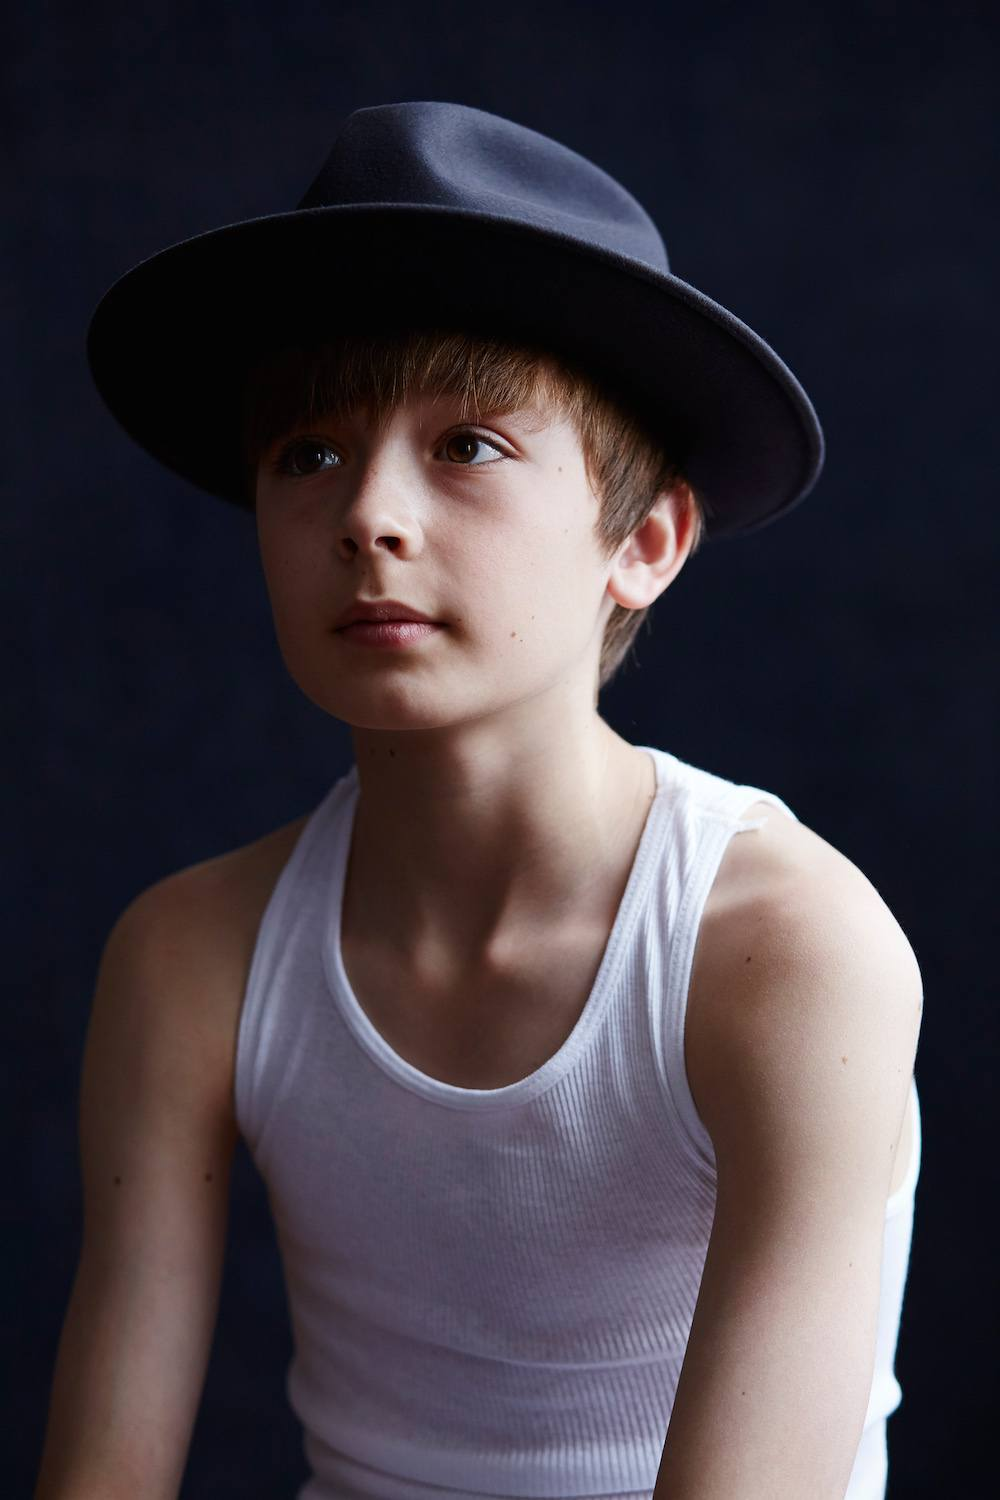 Boy-portrait-hat.jpg